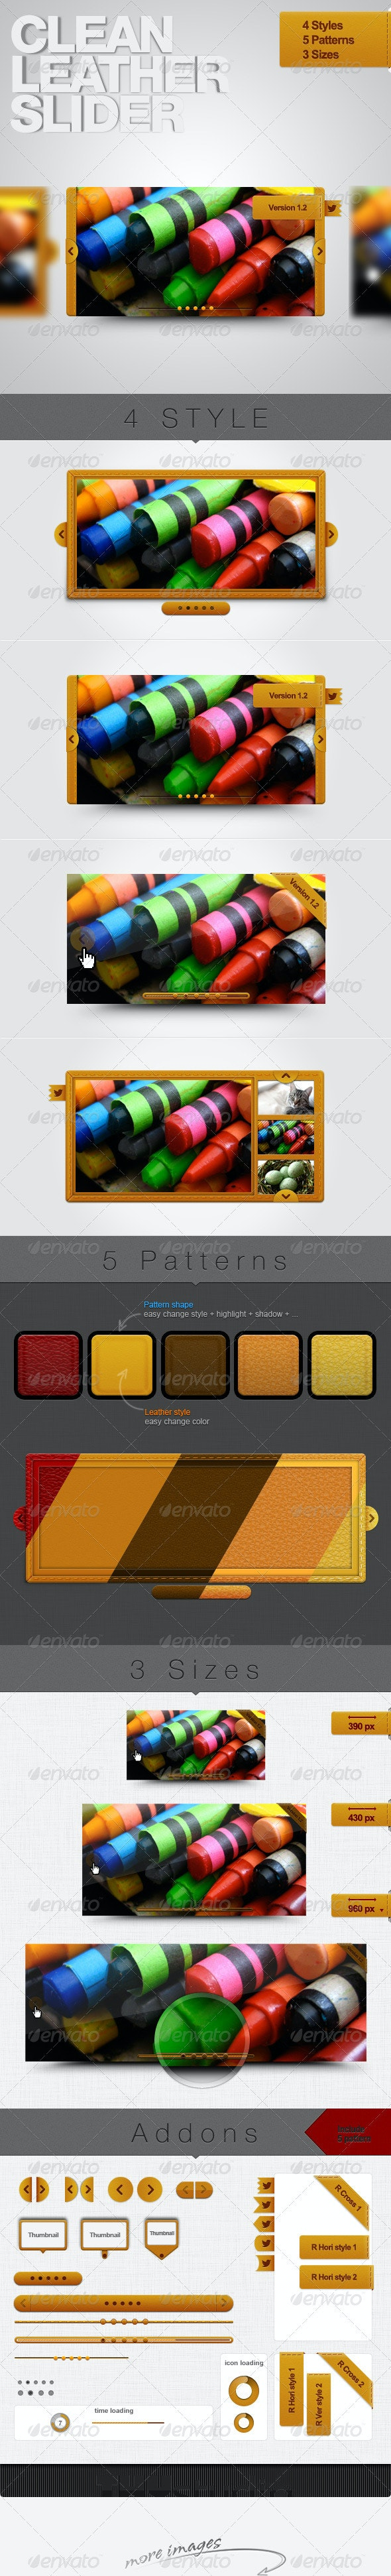 Clean Leather Sliders - Tinytheme - Sliders & Features Web Elements